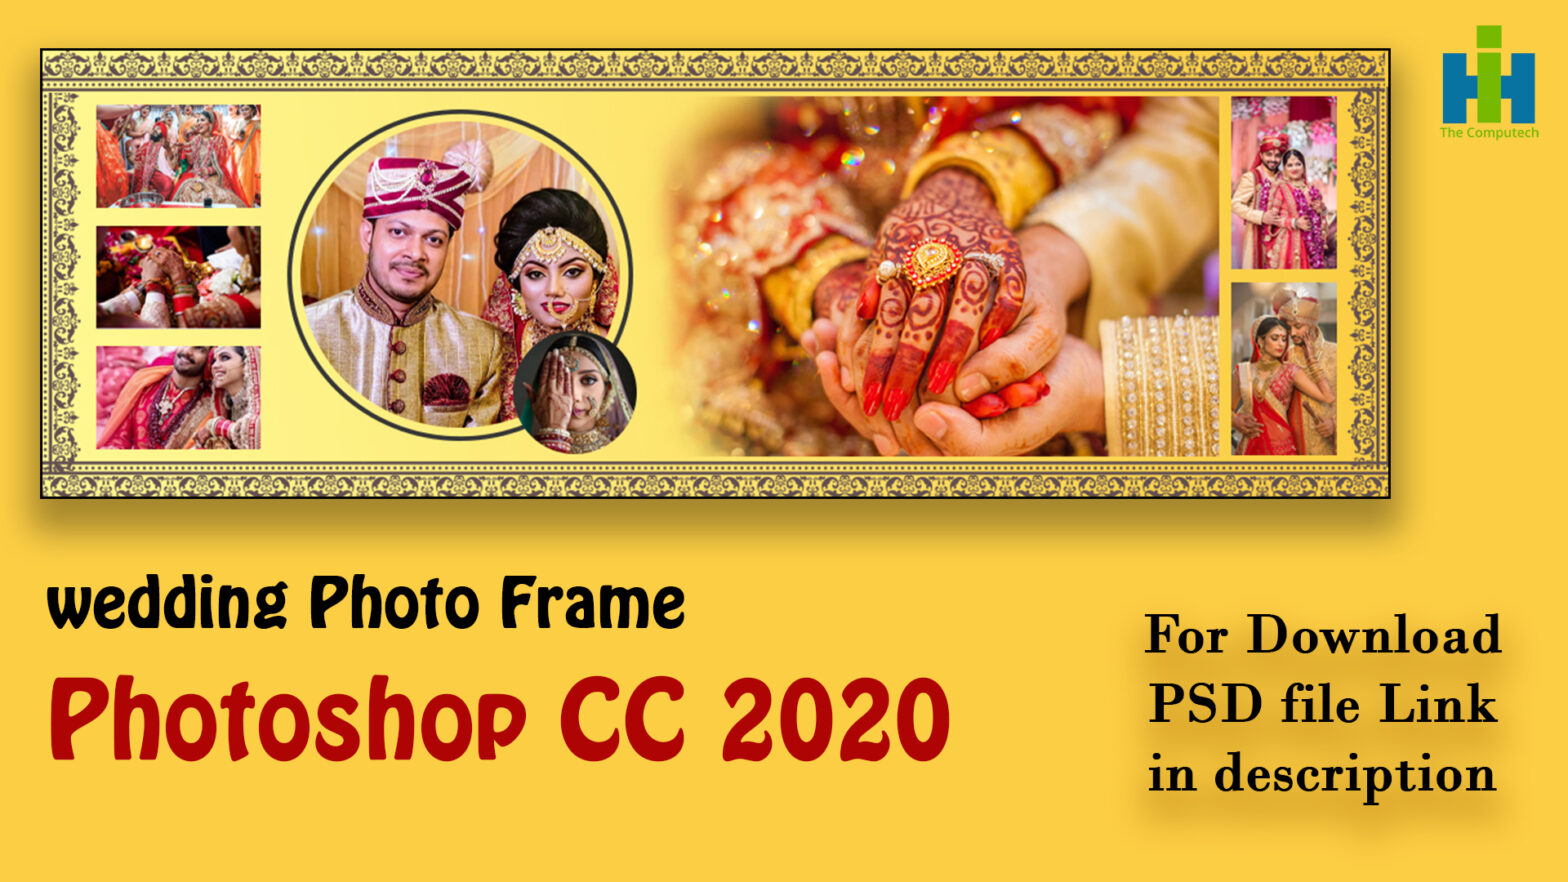 wedding album frame in photoshop cc 2020 tutorial